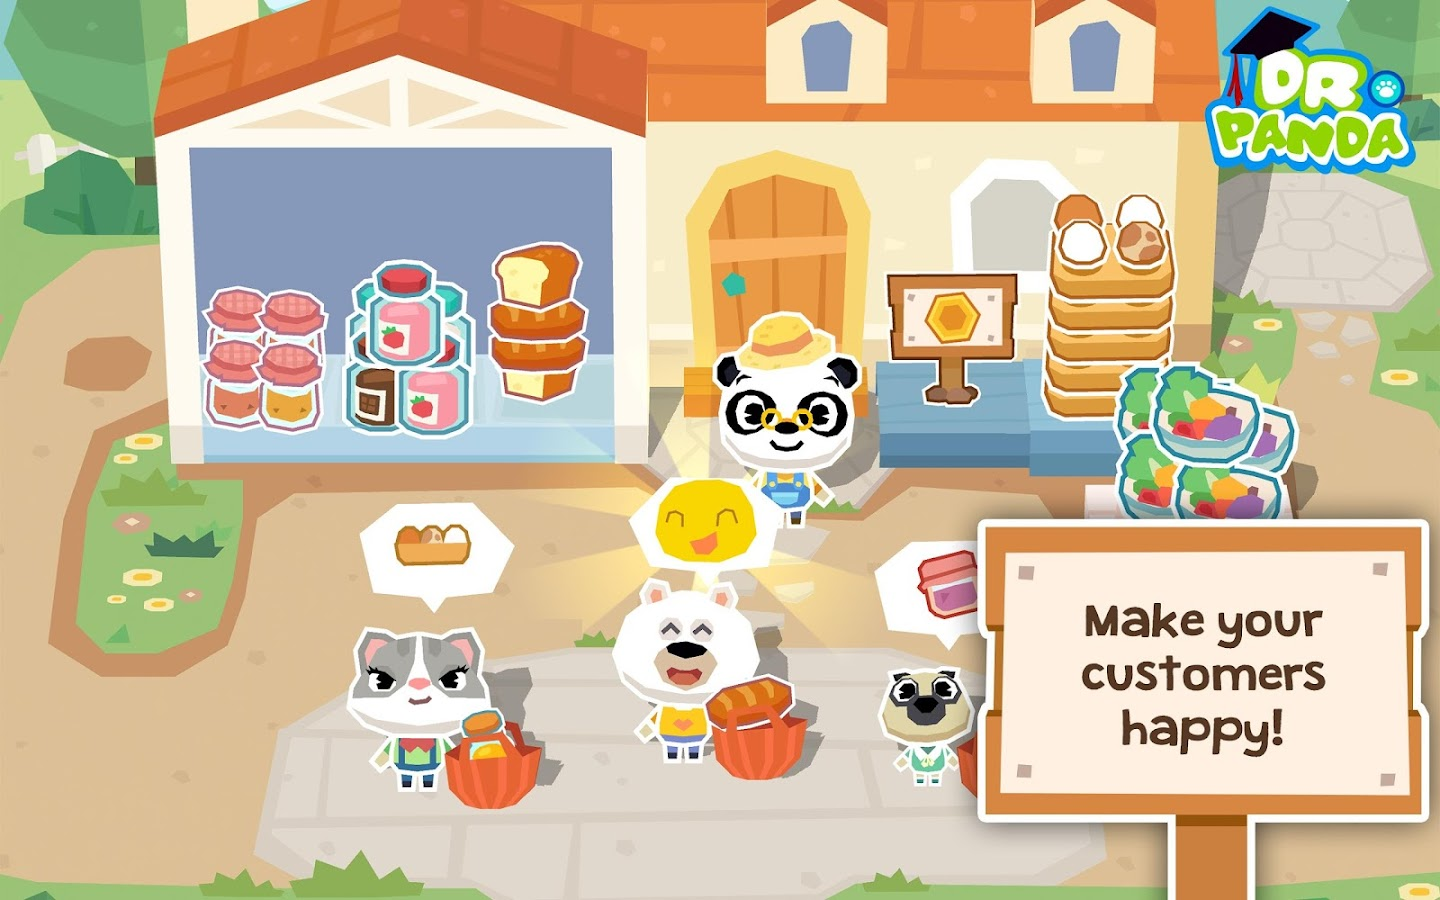 Dr. Panda Farm Screenshot 14